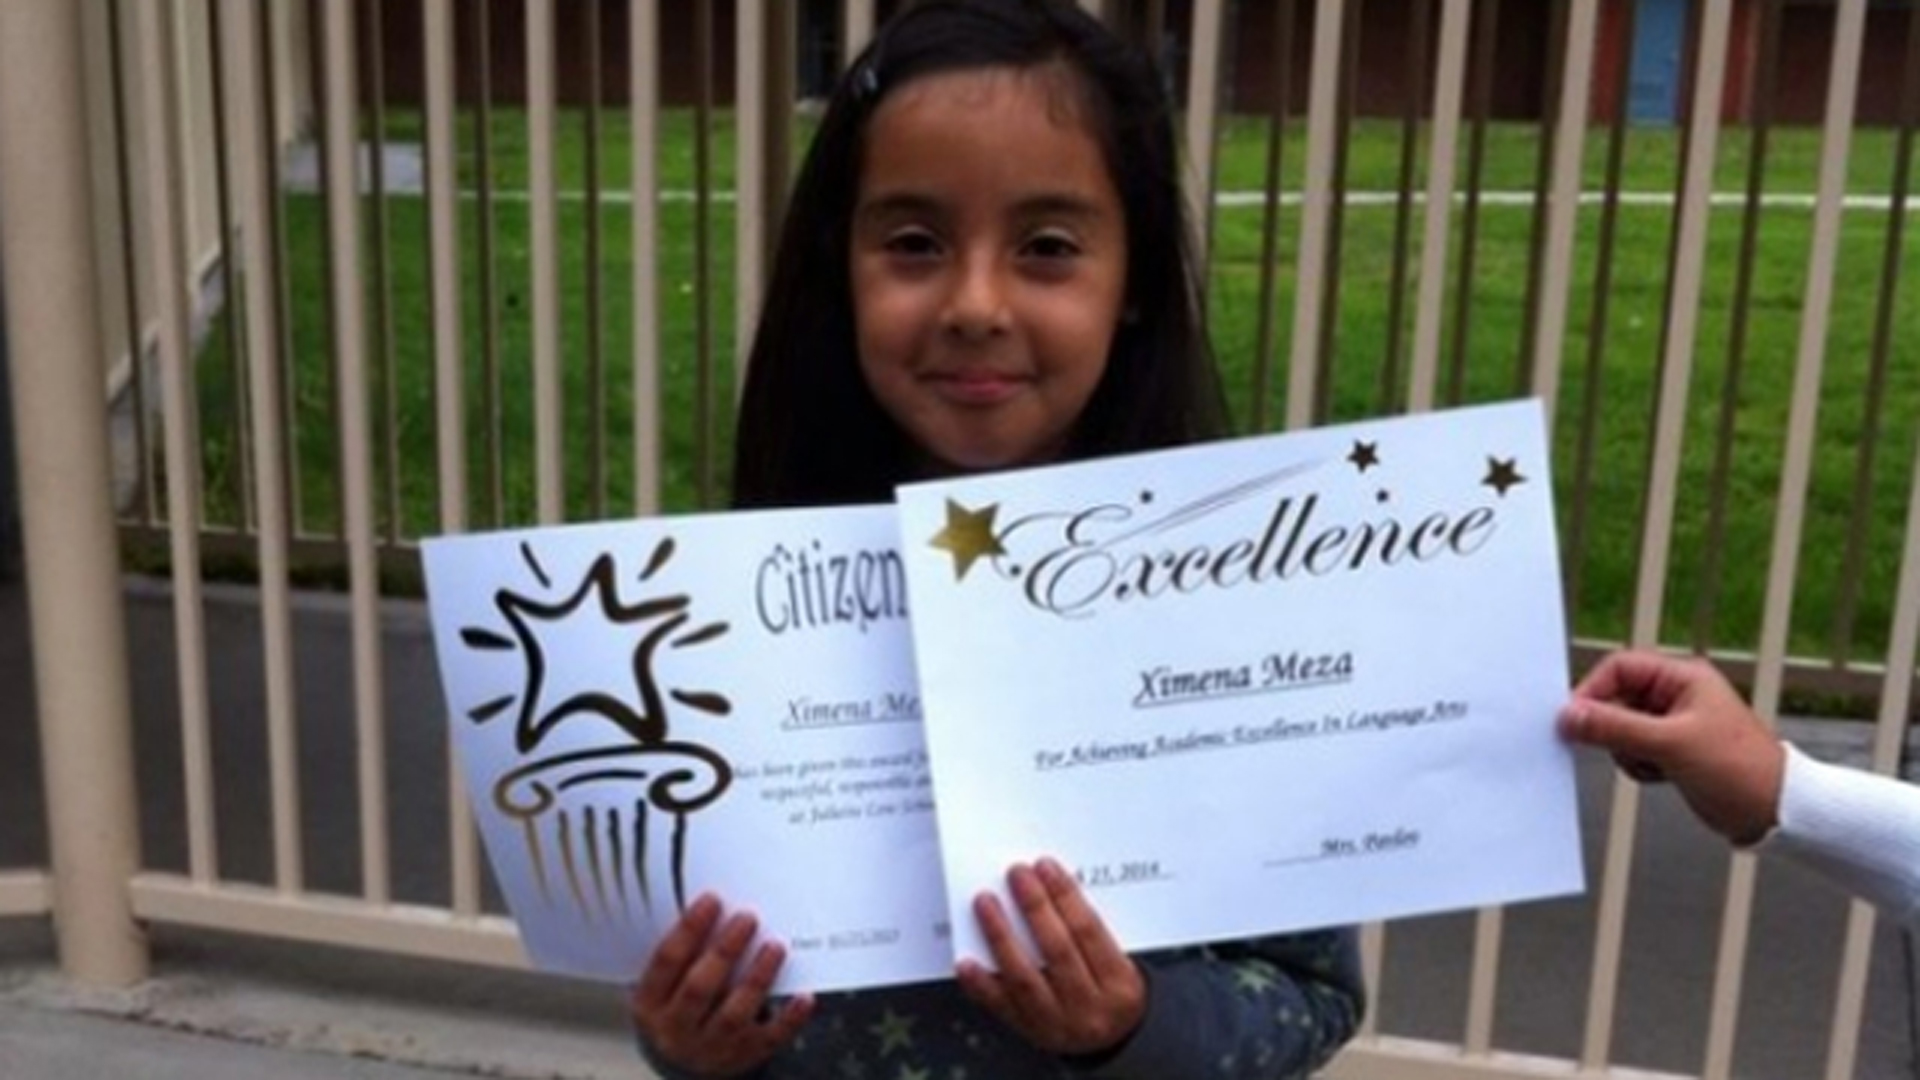 A GoFundMe page was established for Ximena Meza, who was shot and killed Oct. 22, 2014.